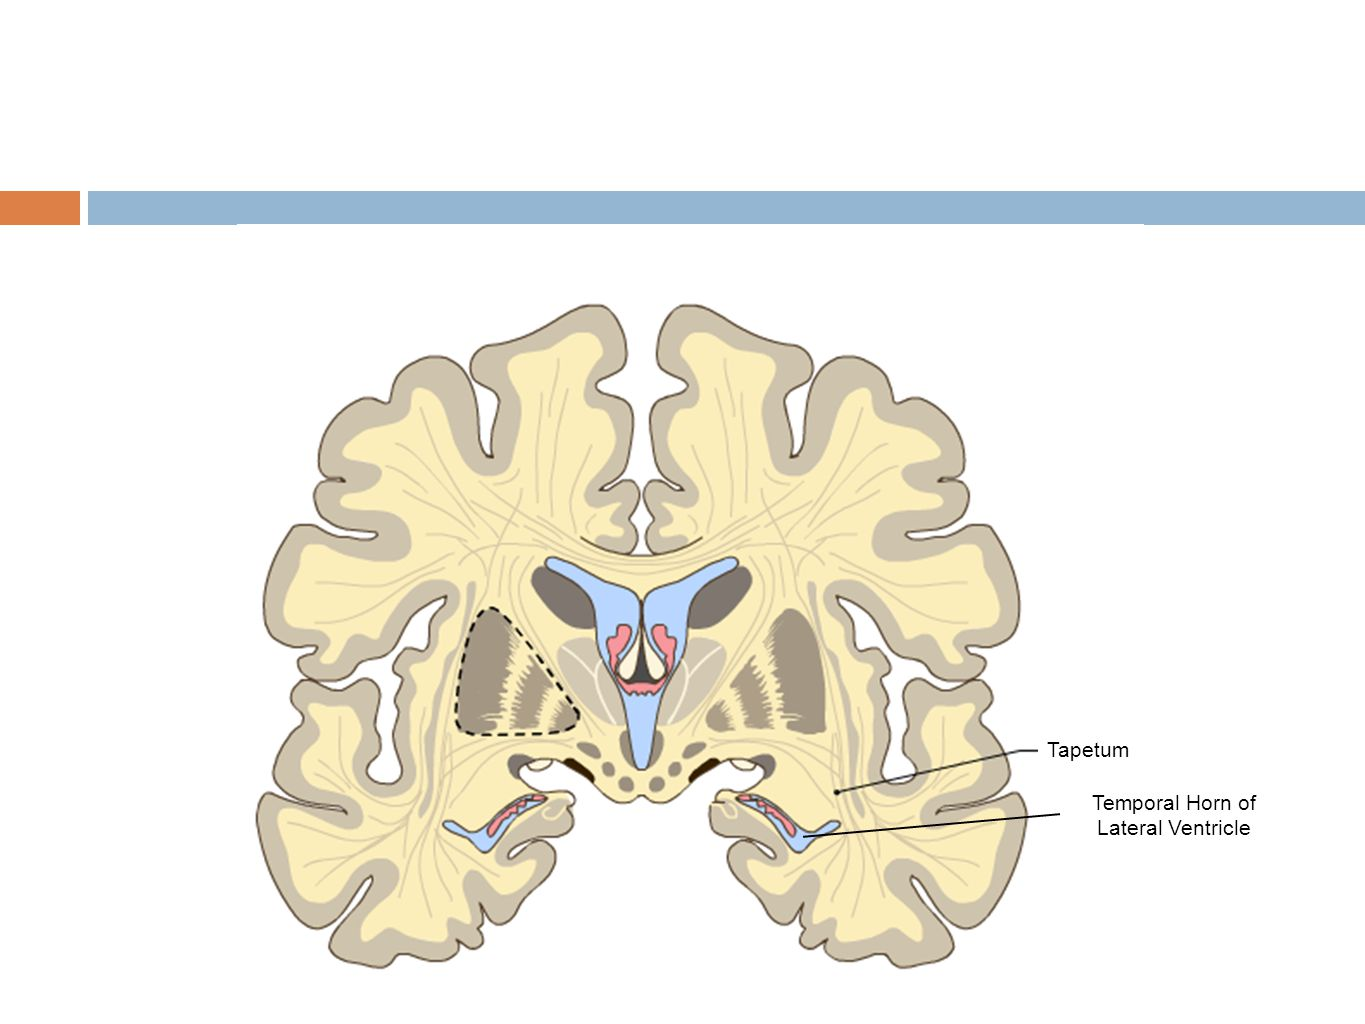 Temporal Horn of Lateral Ventricle